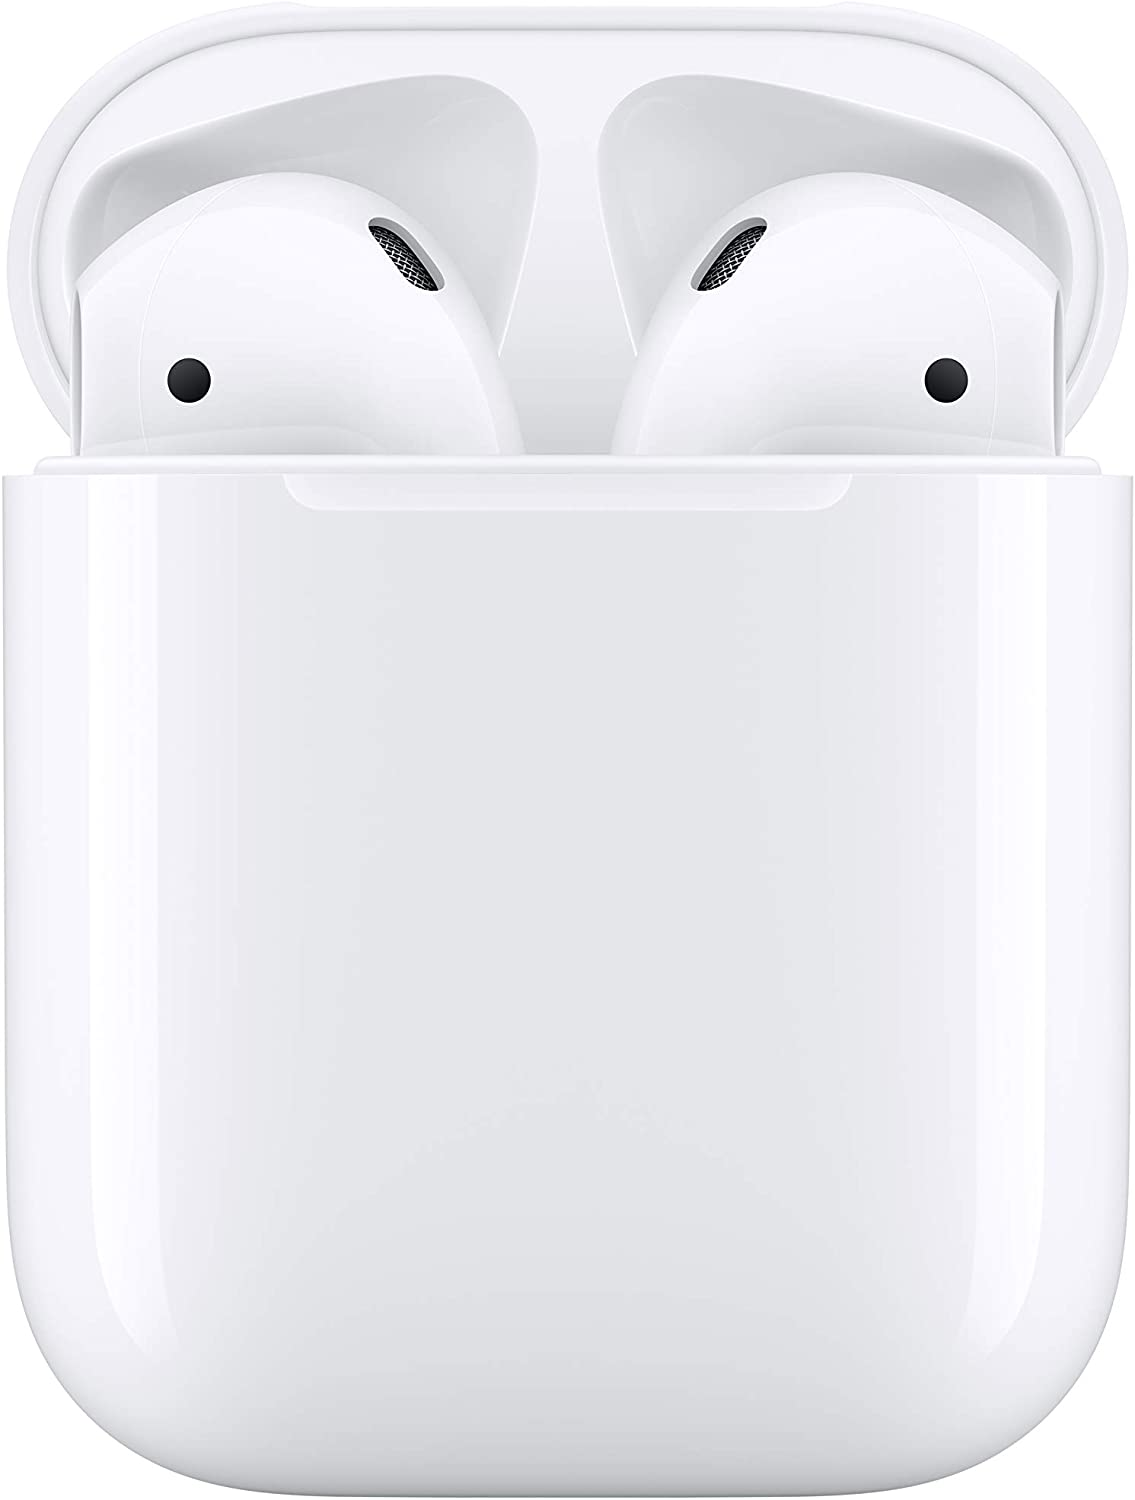 iPhoneユーザーなら使いやすさバツグン「Apple AirPods with Charging Case」